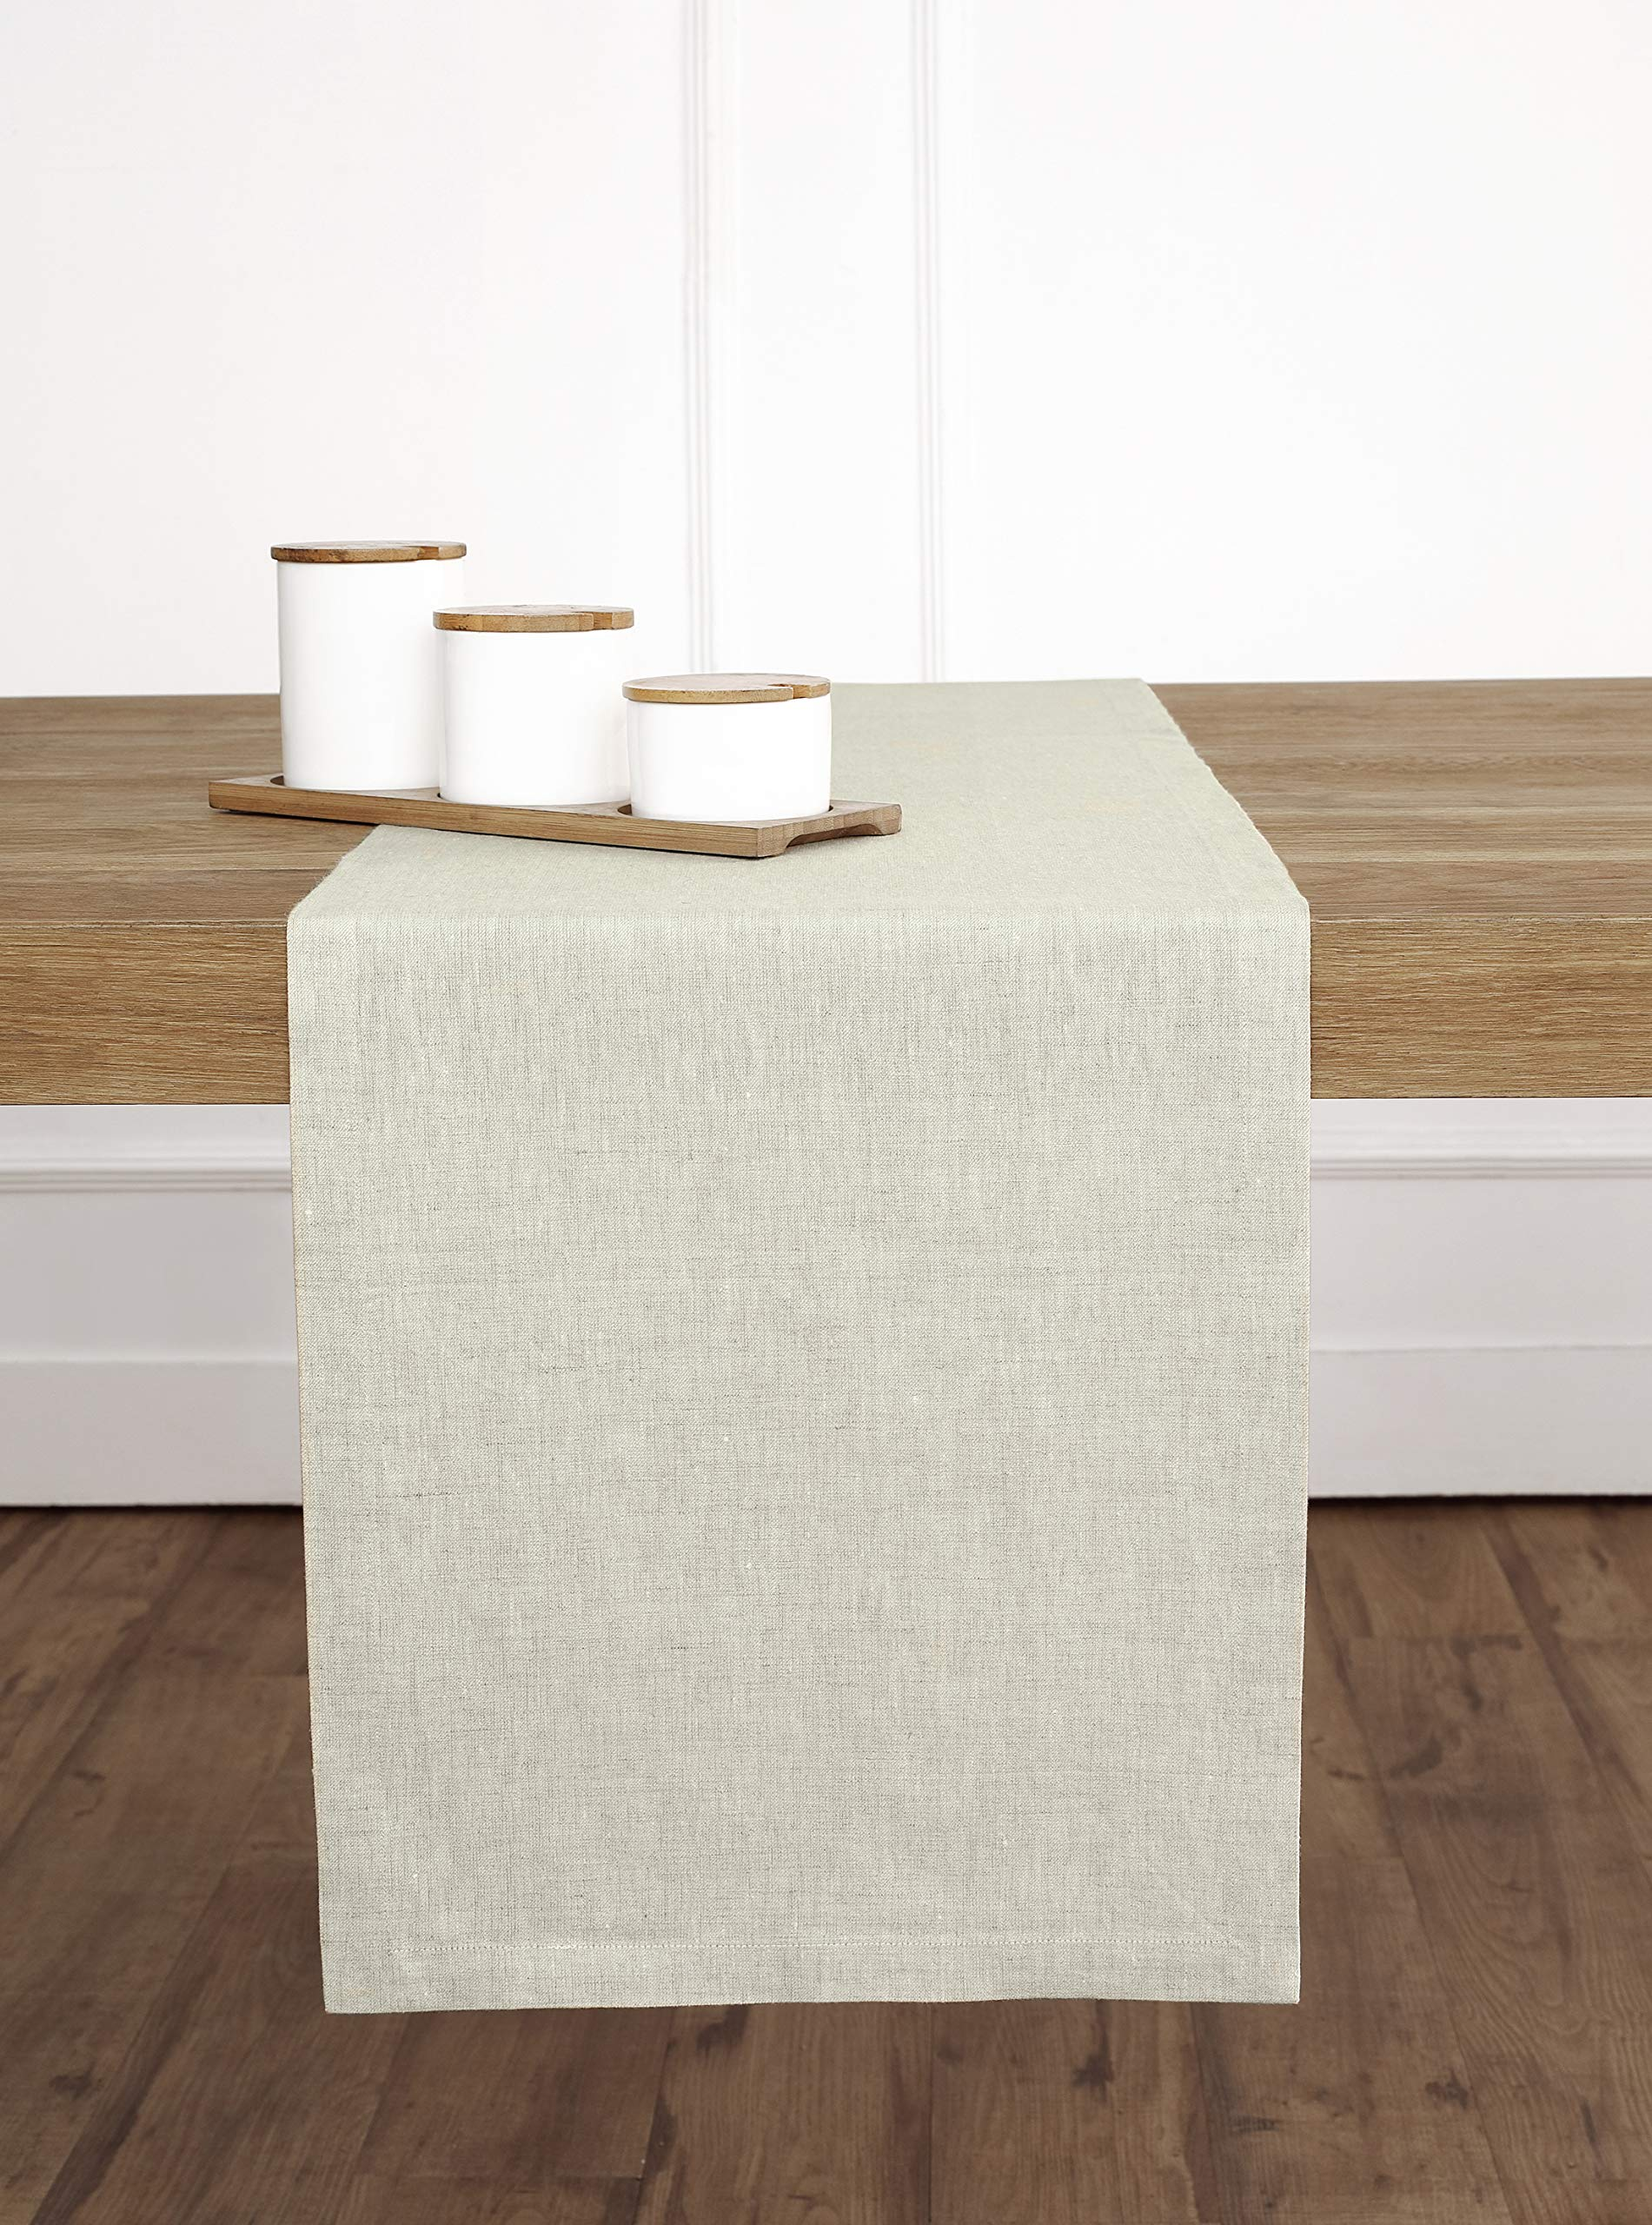 Solino Home Medium Weight Linen Table Runner - 100% Pure Linen - 14 x 72 Inch, Chambray Ivory - Handcrafted by skilled Artisans from 100% European Flax Size - 14 x 72 Inch Easy Care - Machine Washable, Low Iron as Needed - table-runners, kitchen-dining-room-table-linens, kitchen-dining-room - 91mrsdISqDL -